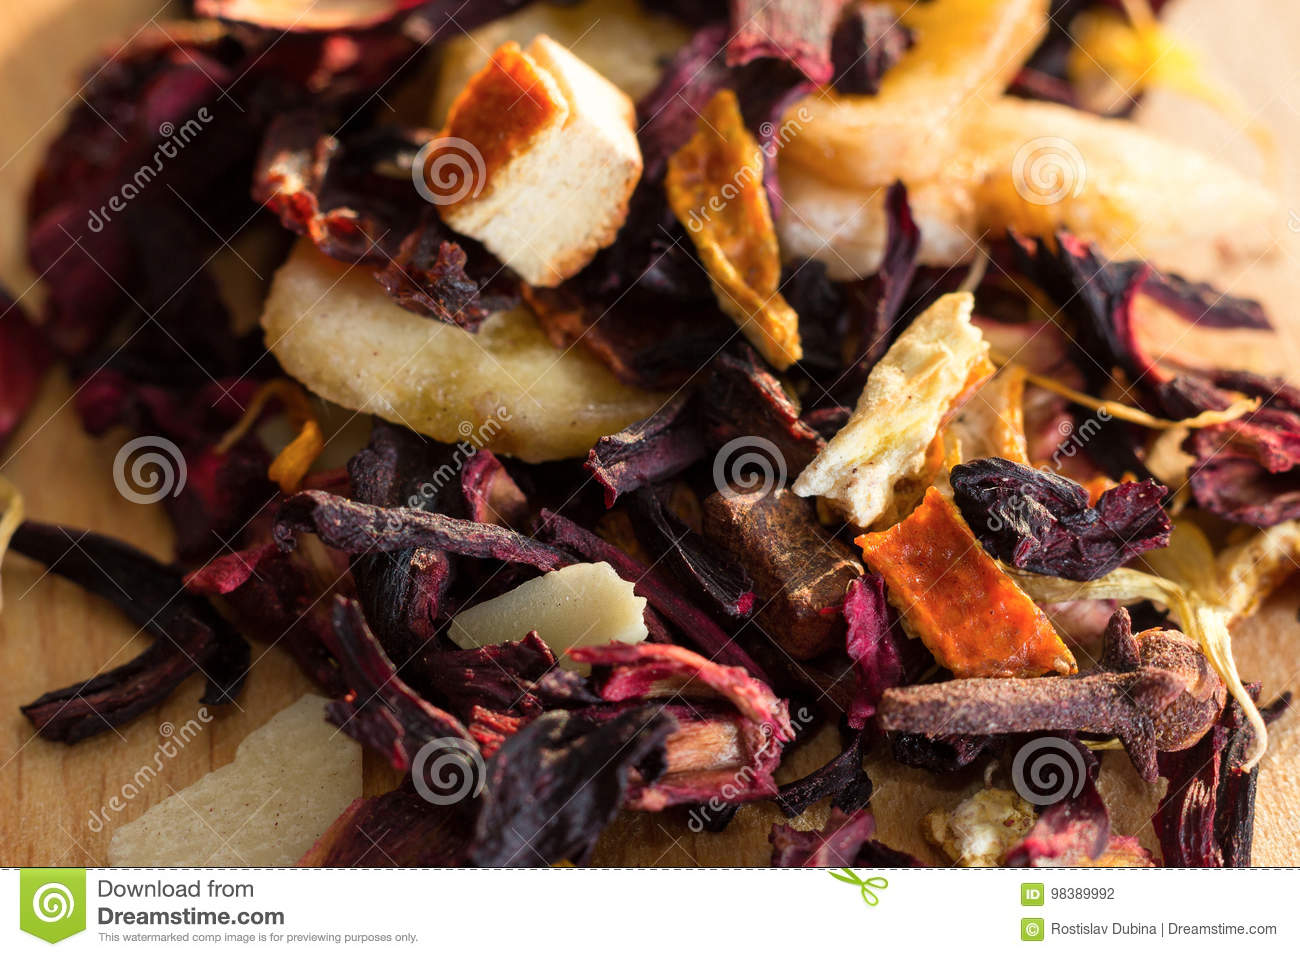 Pile of fruit tea with petals and dry fruit e composition of the pile of fruit tea with petals and dry fruit e composition of the heap of tea leaves and dried hibiscus flower located on a wood izmirmasajfo Images